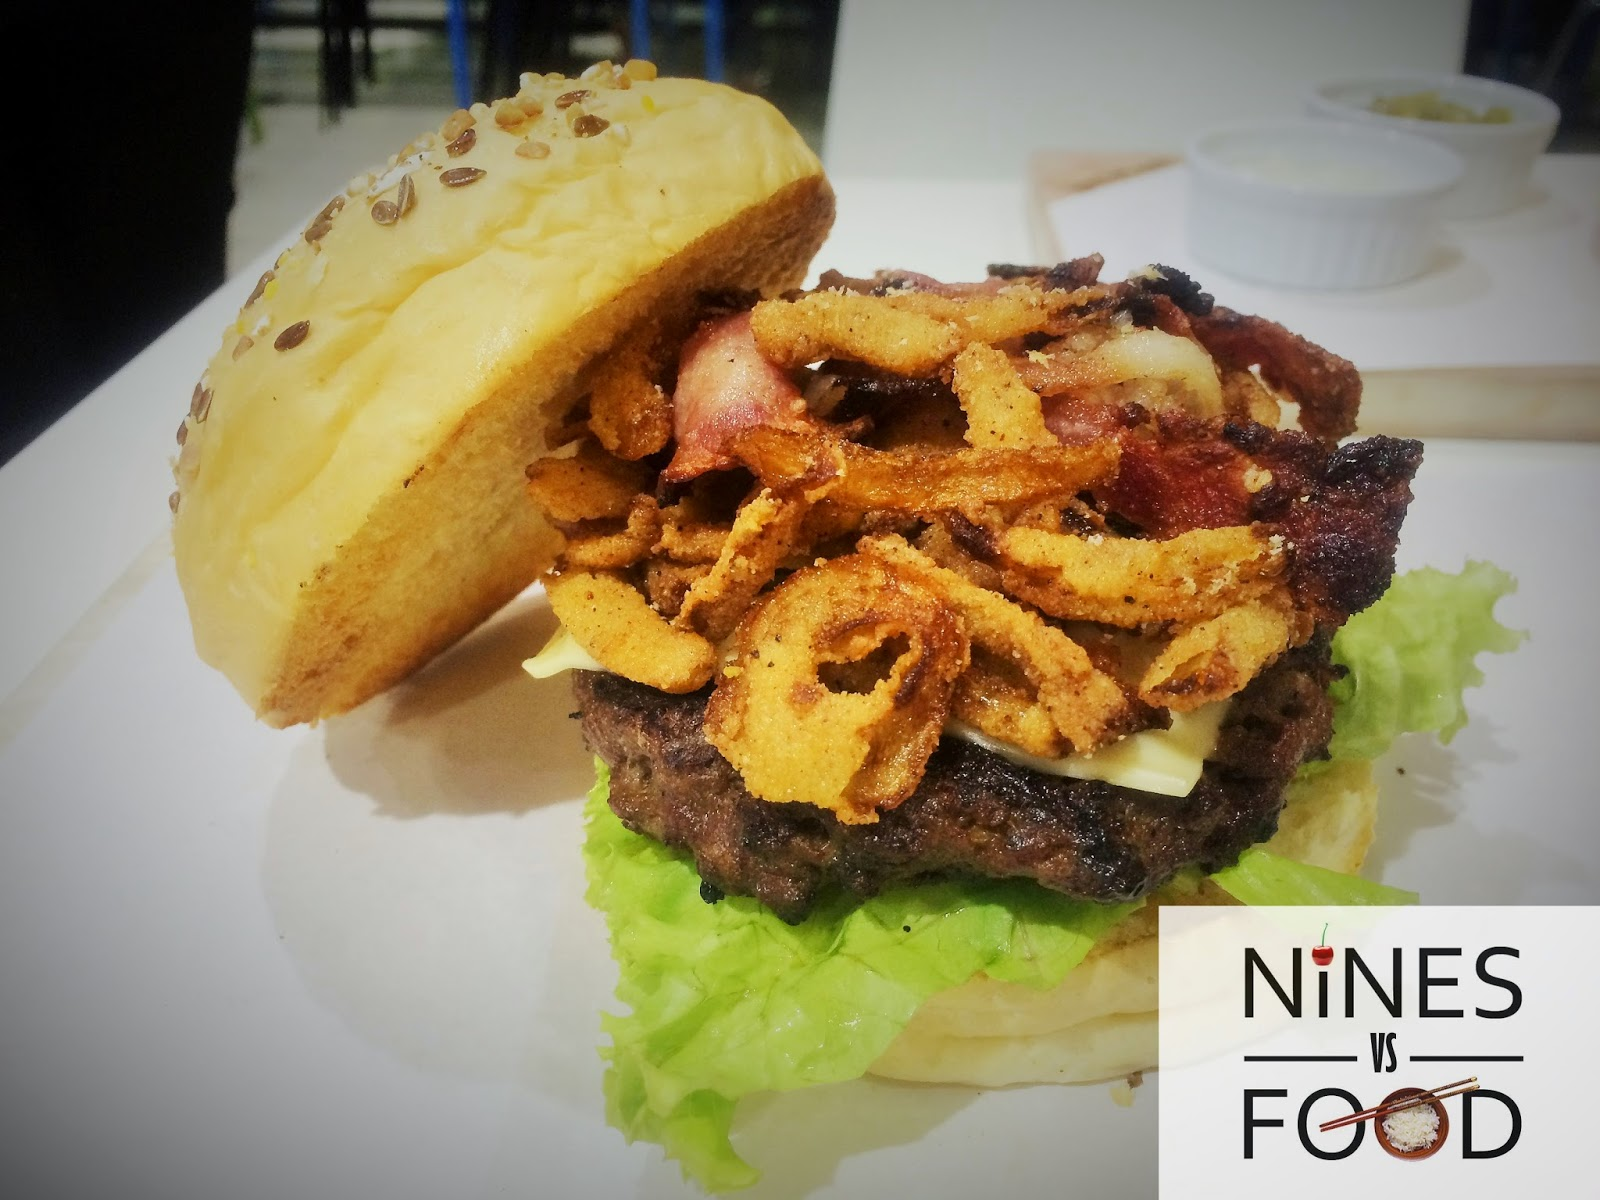 Nines vs Food - Wham! Burgers and Sausages-4.jpg